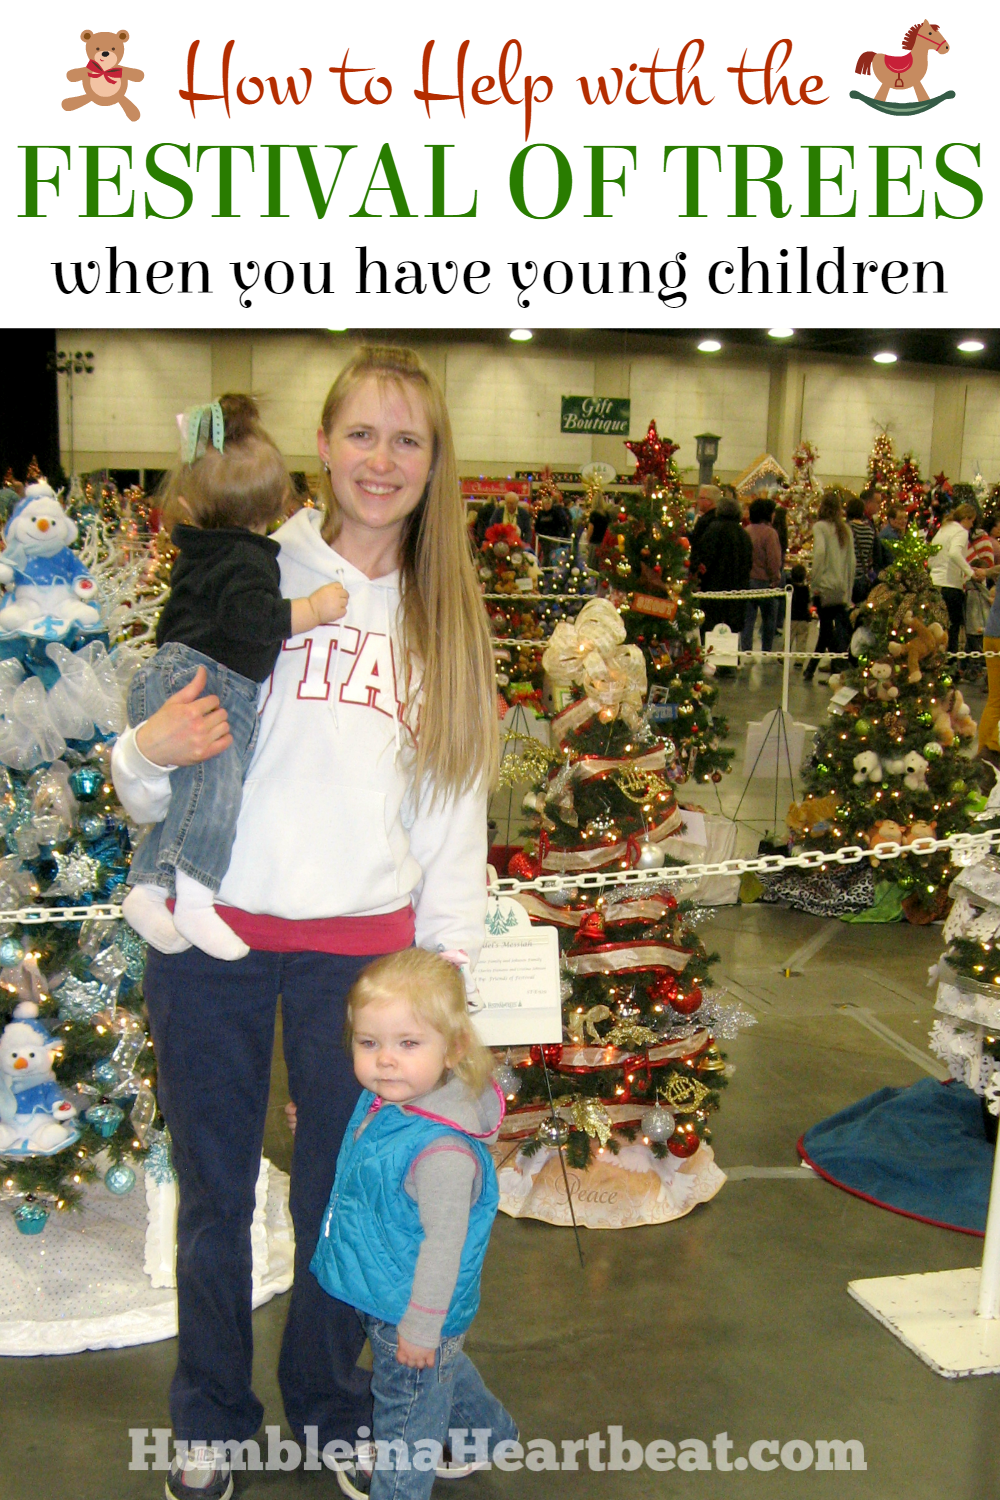 There are so many ways to help with The Festival of Trees in Salt Lake City even when you have young kids!